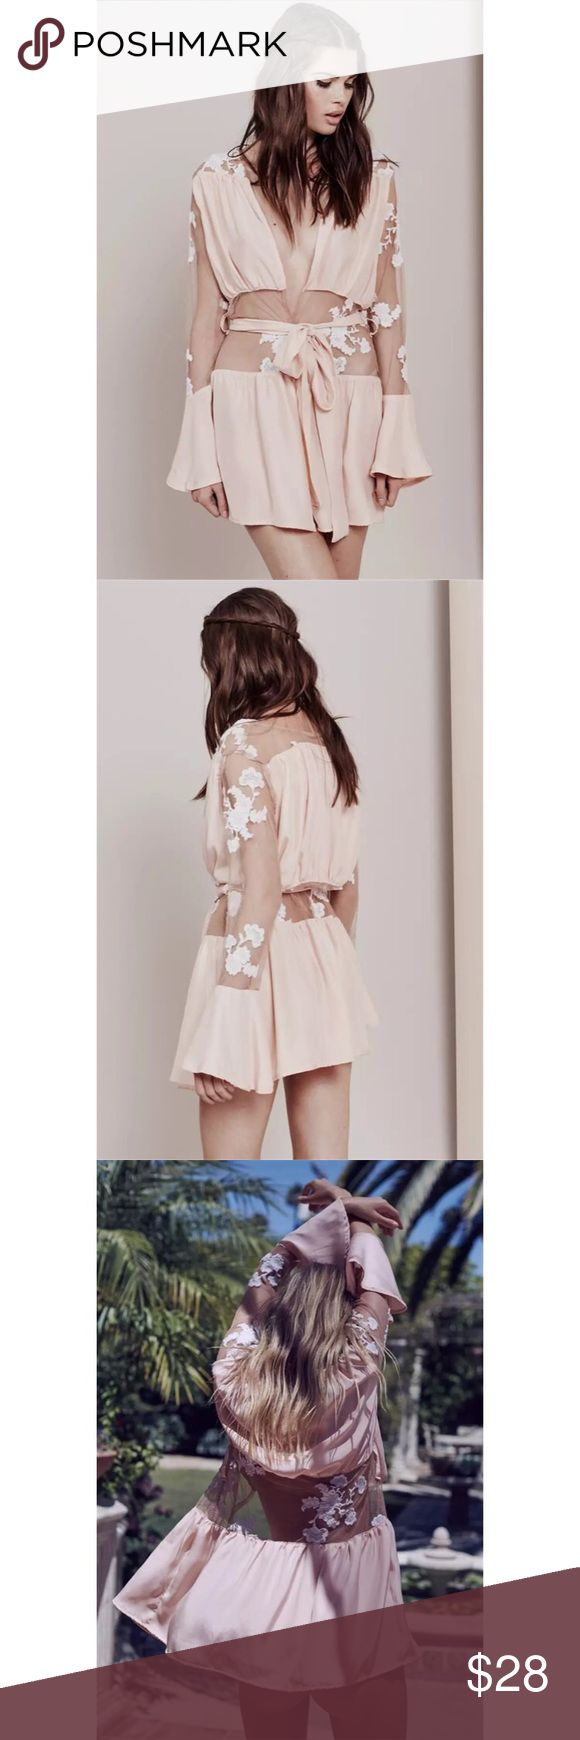 NWOT FL&L inspired Lace Robe XS $89 Beach cover NWOT FL&L inspired Lace Robe  Condition: New without tags Color: Pink/Nude Size: XS Retail Price US$89  For Love and Lemons inspired!  Measurement  Length 75cm Bust 78cm Sleeve 58cm For Love and Lemons Intimates & Sleepwear Robes